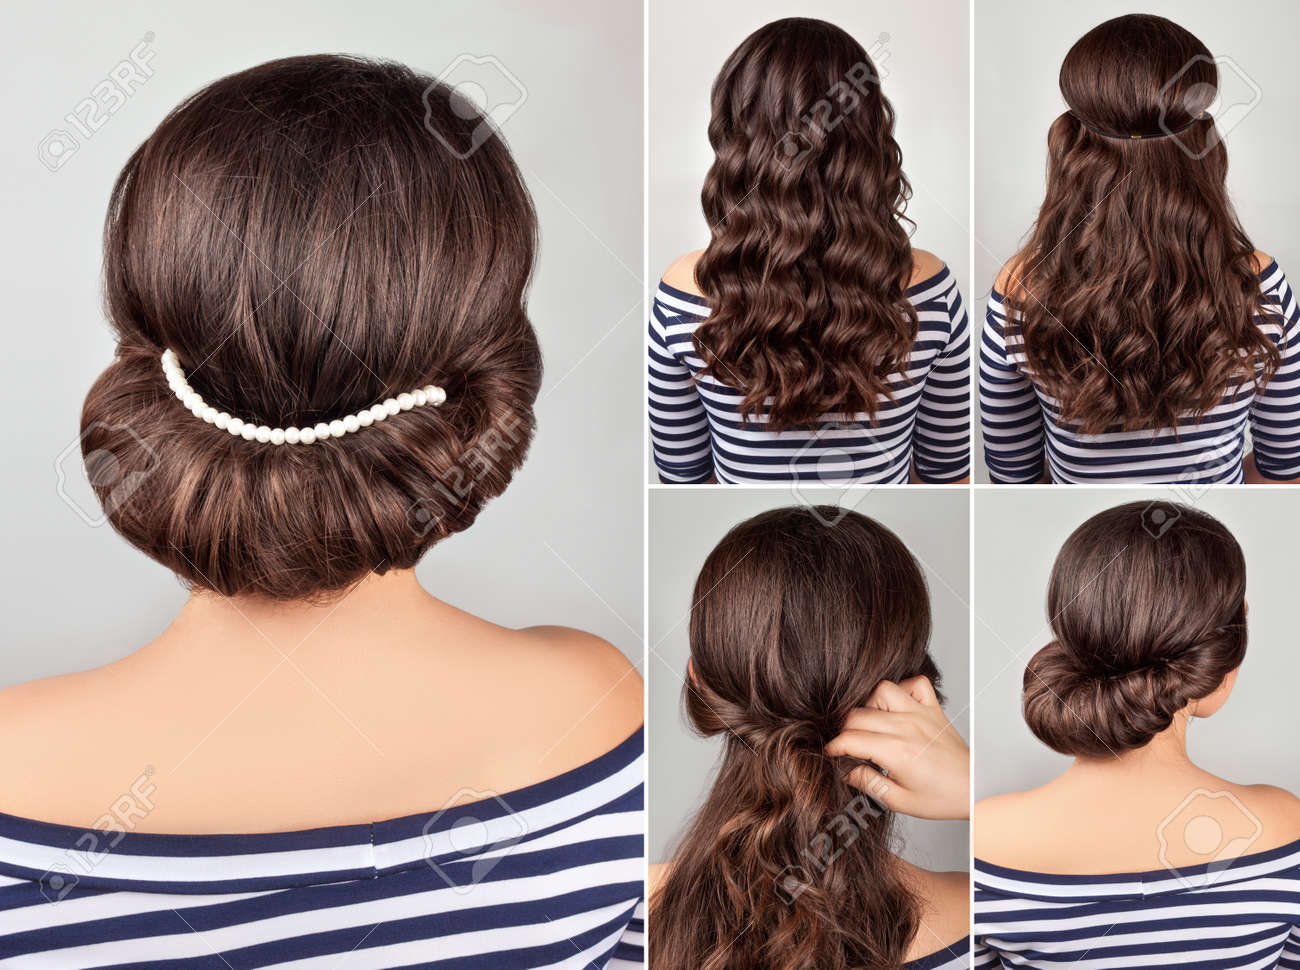 Greek Style Hairdo With String Of Pearls Tutorial Hairstyle